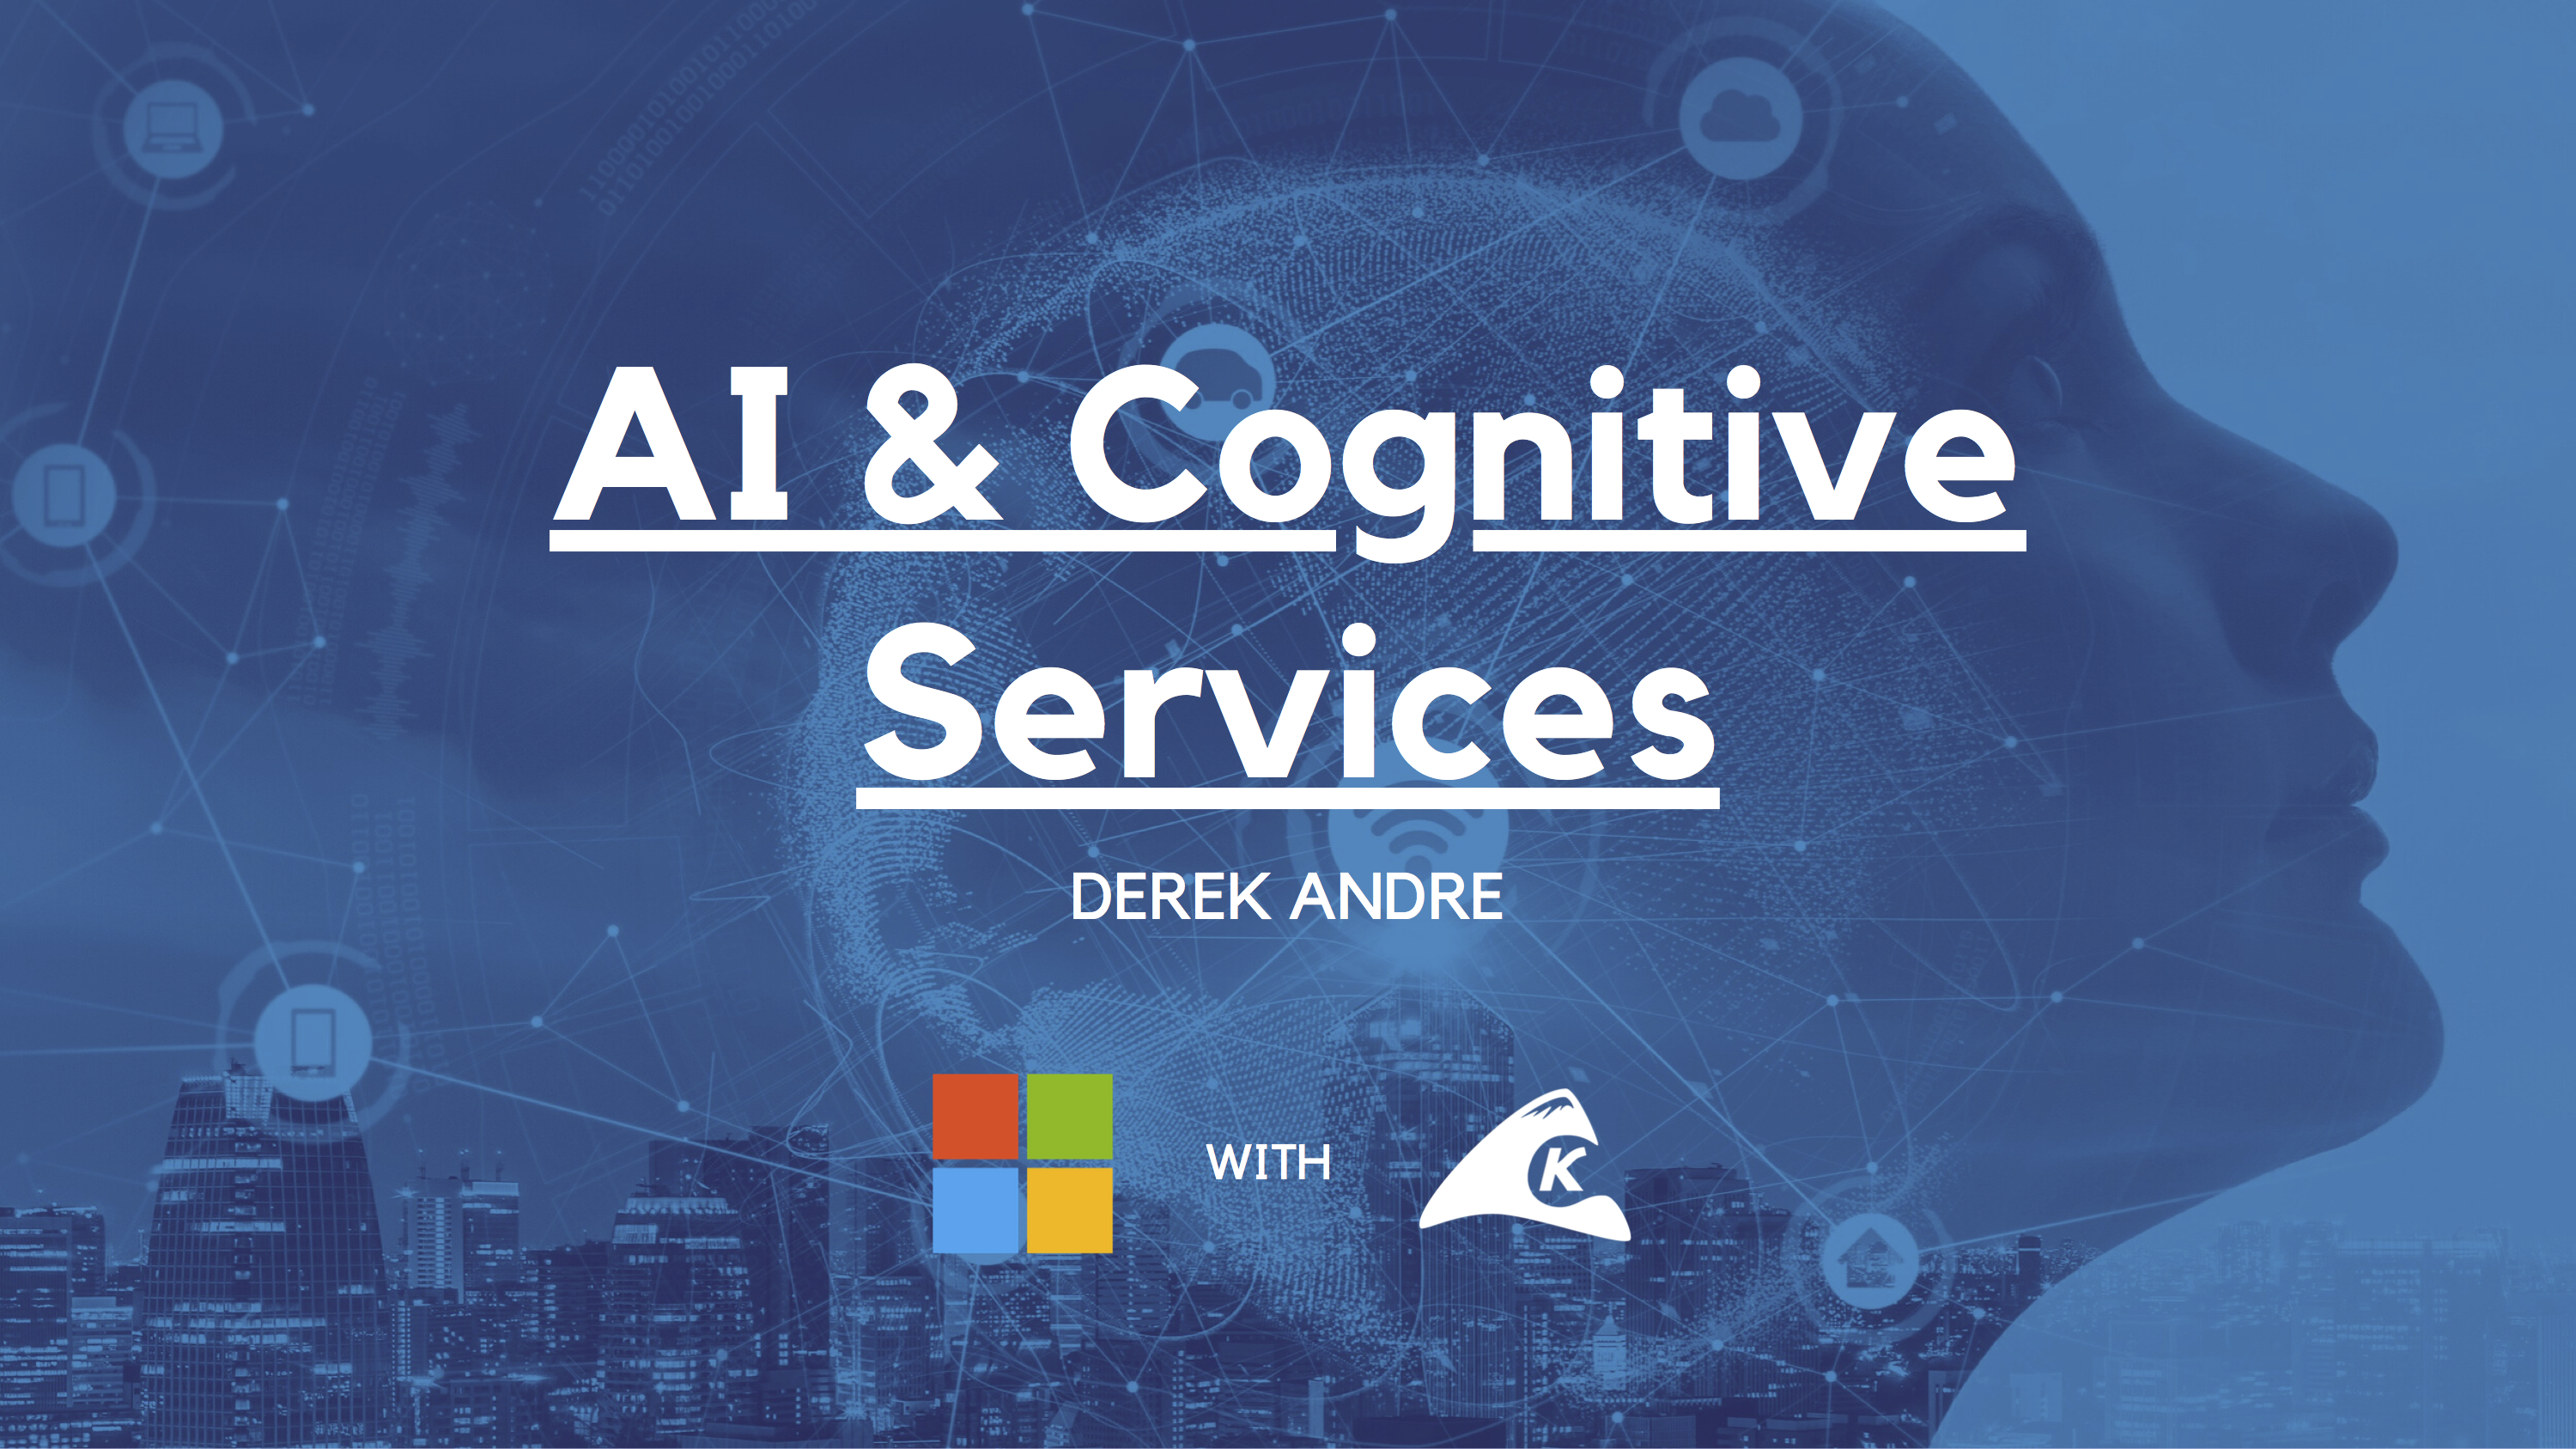 AI and Cognitive Services Presentation Slides